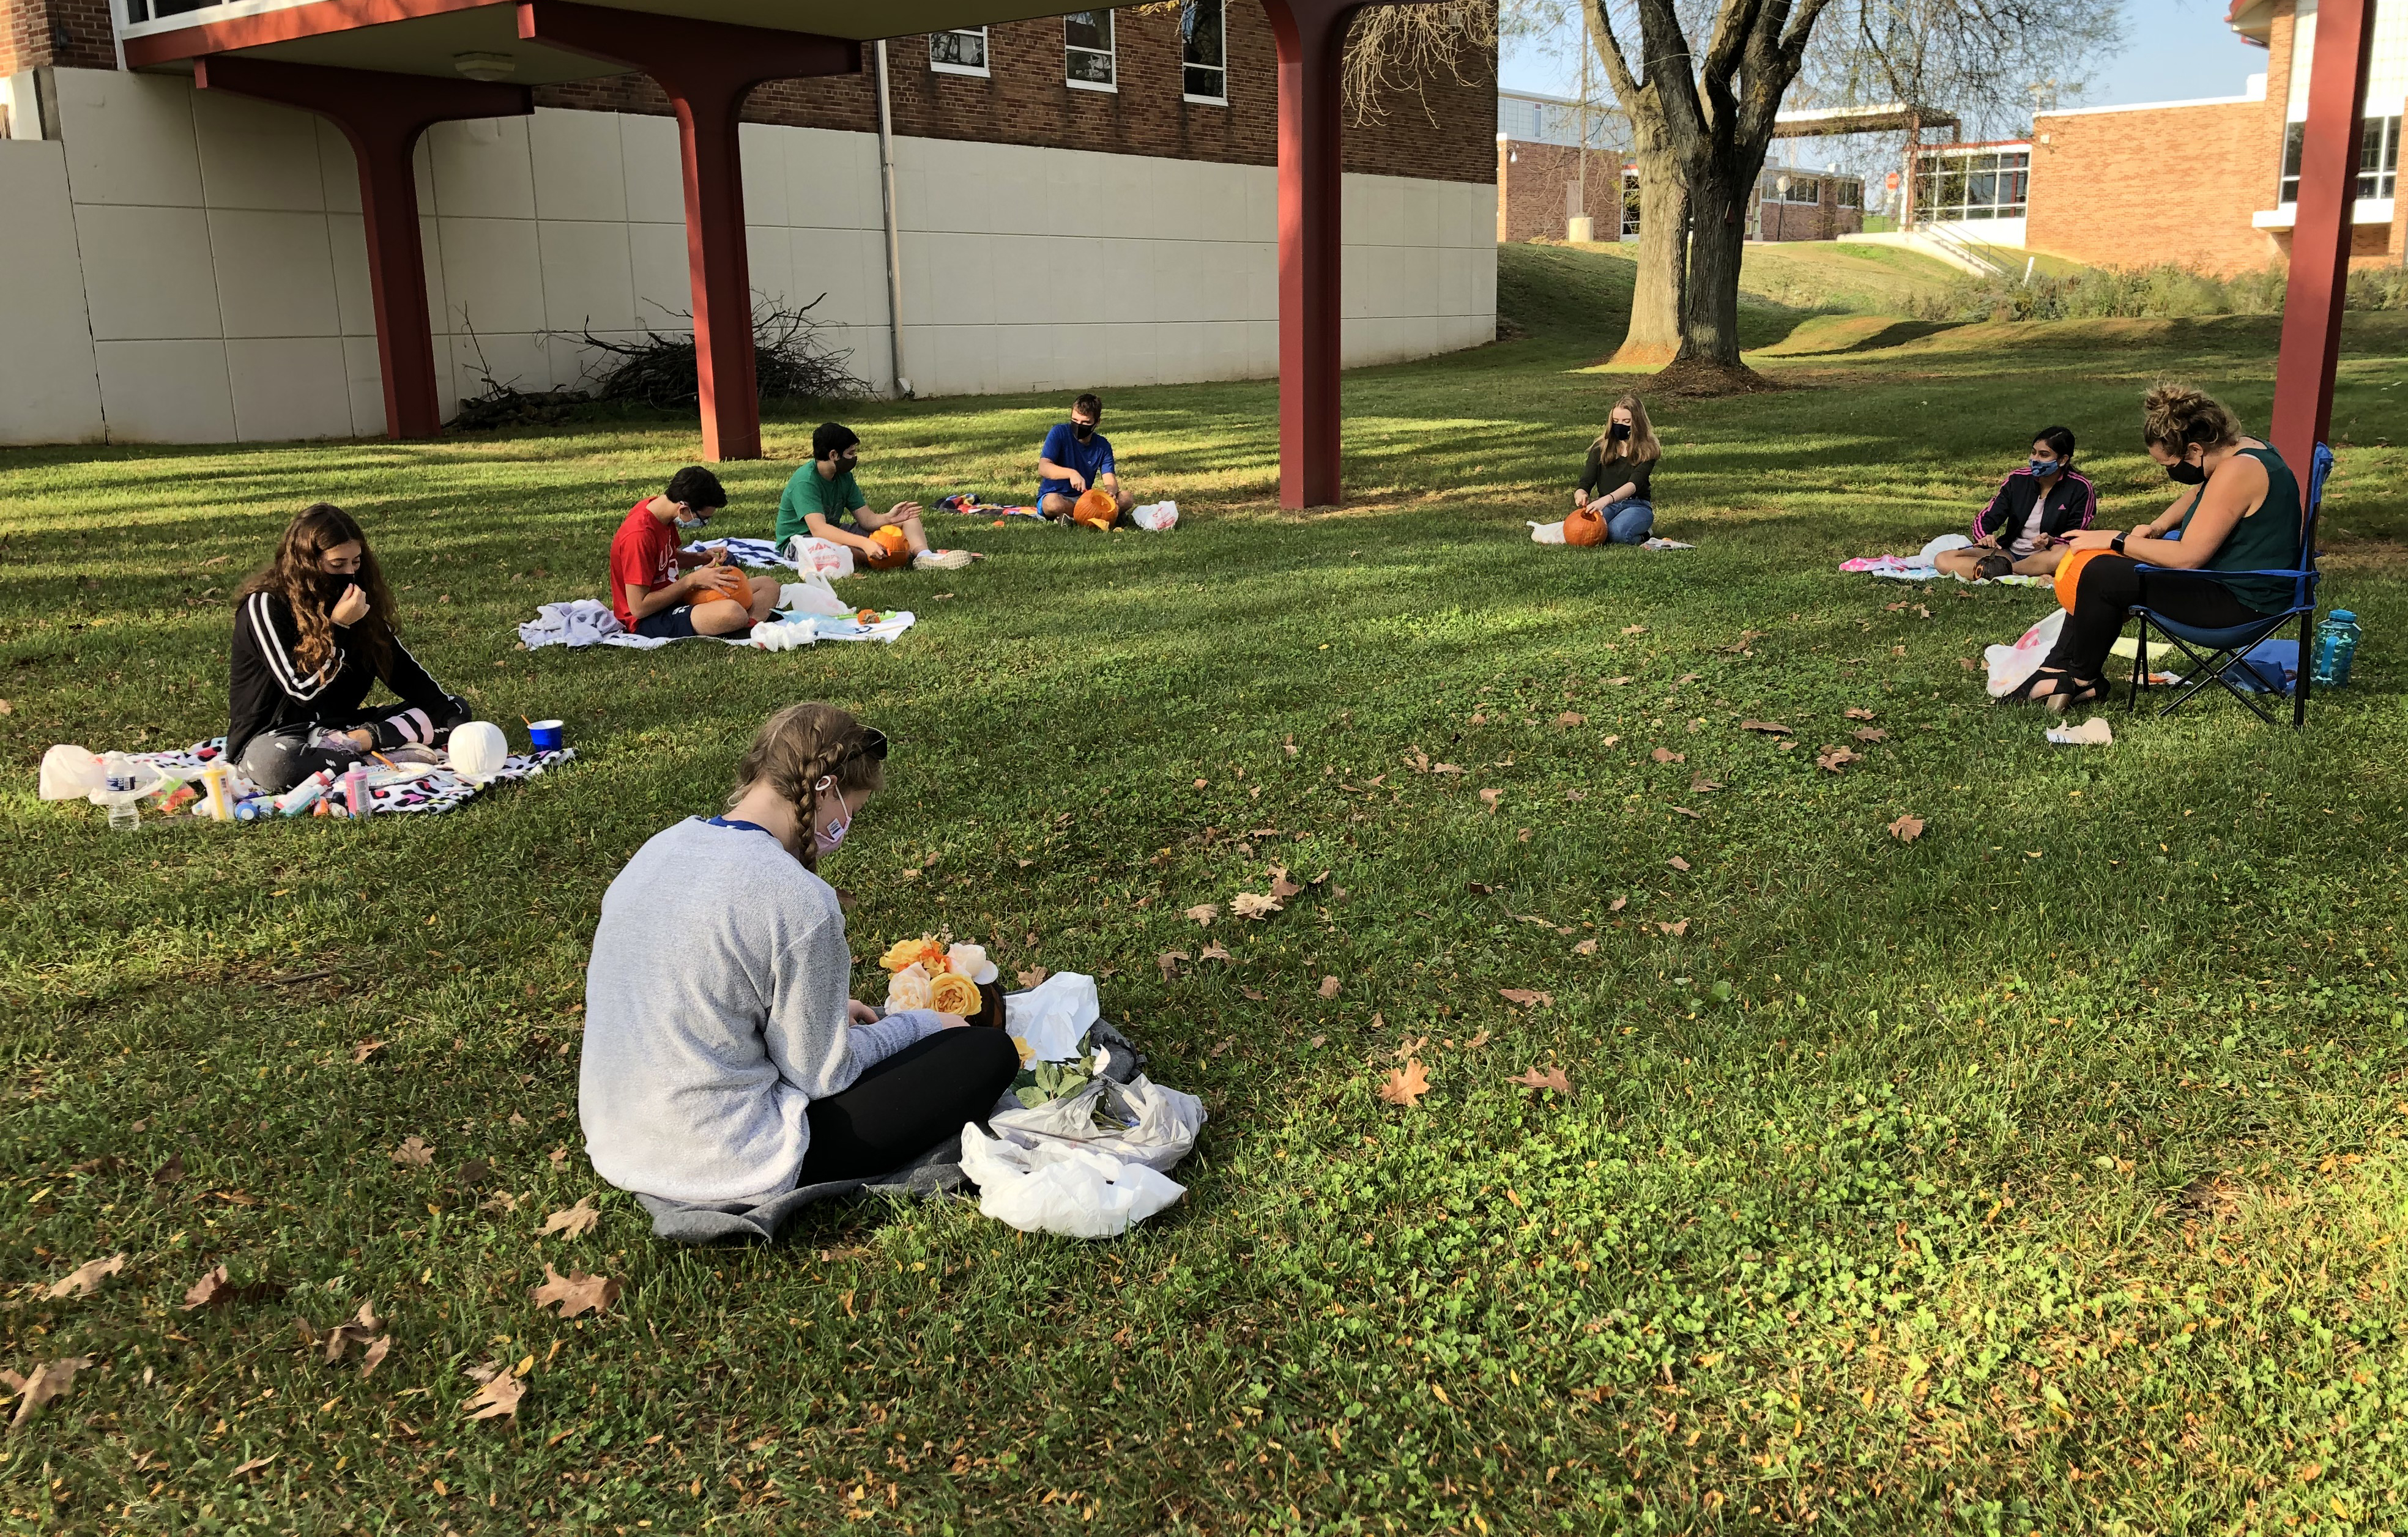 students spread out in the grass working on pumpkins